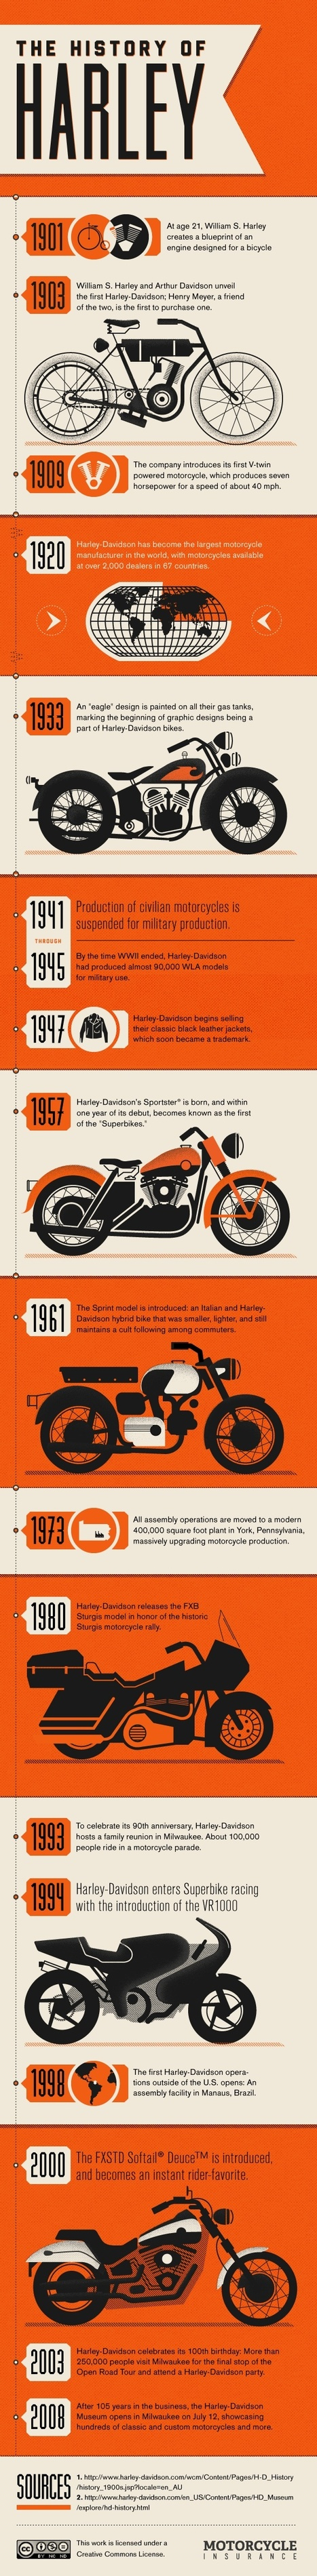 Harley-Davidson   Les infographies !   Scoop.it